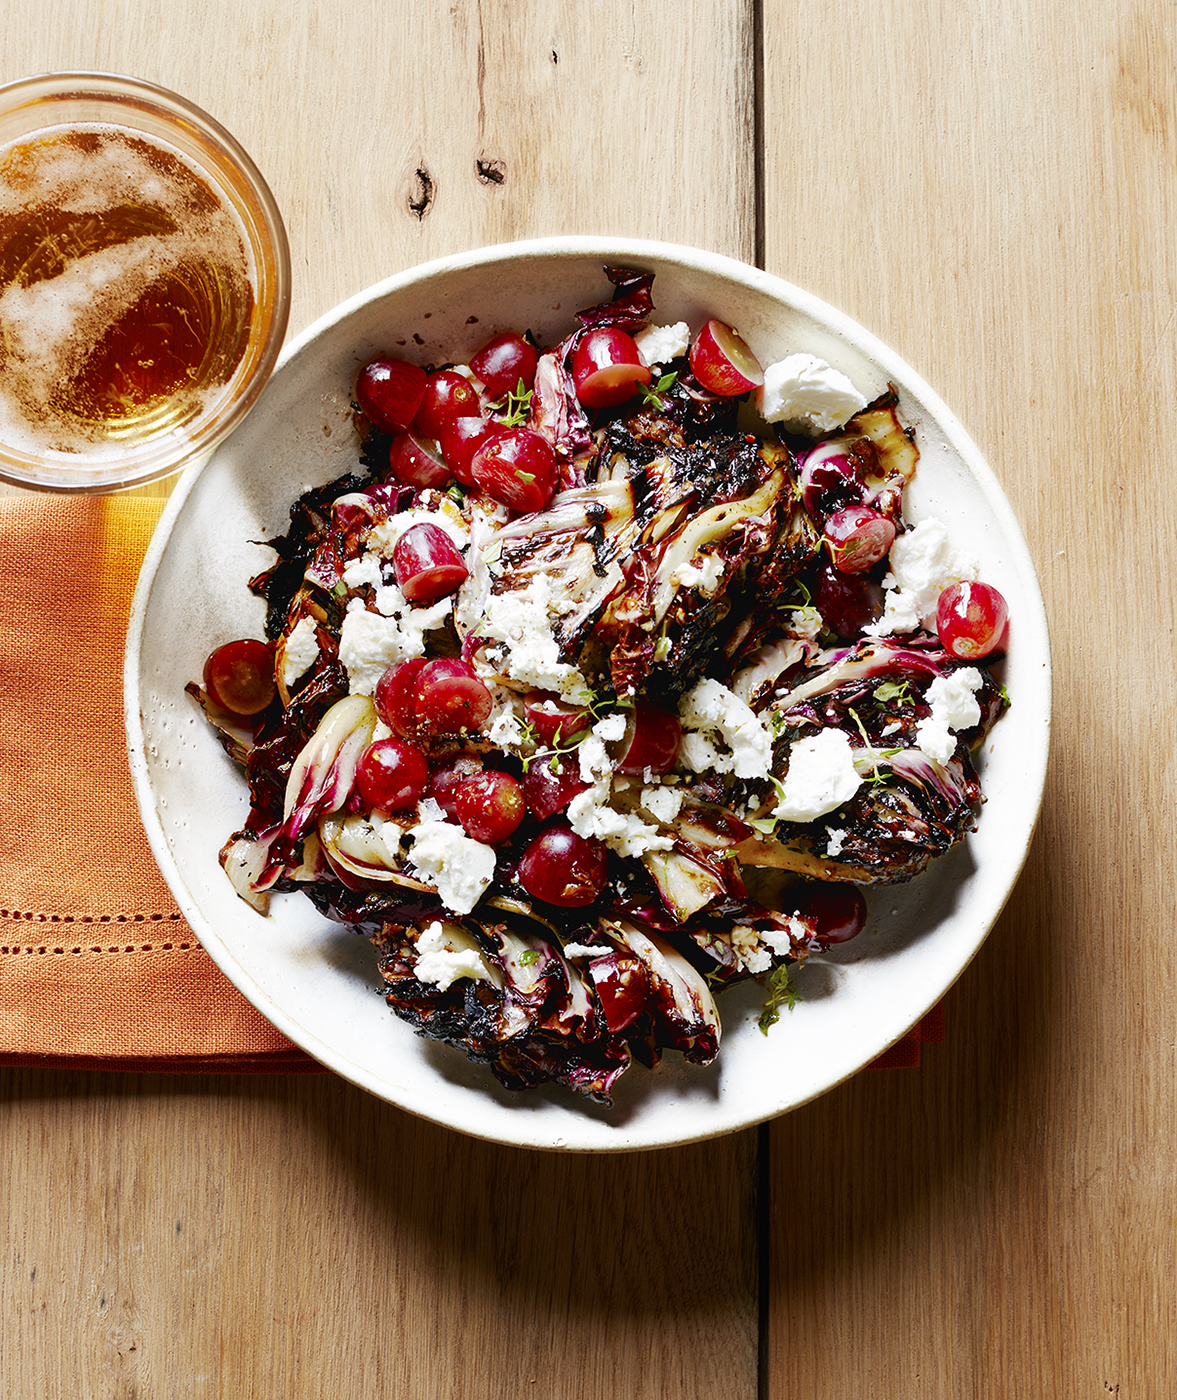 Grilled Radicchio Salad with Goat Cheese, Thyme, and Grapes